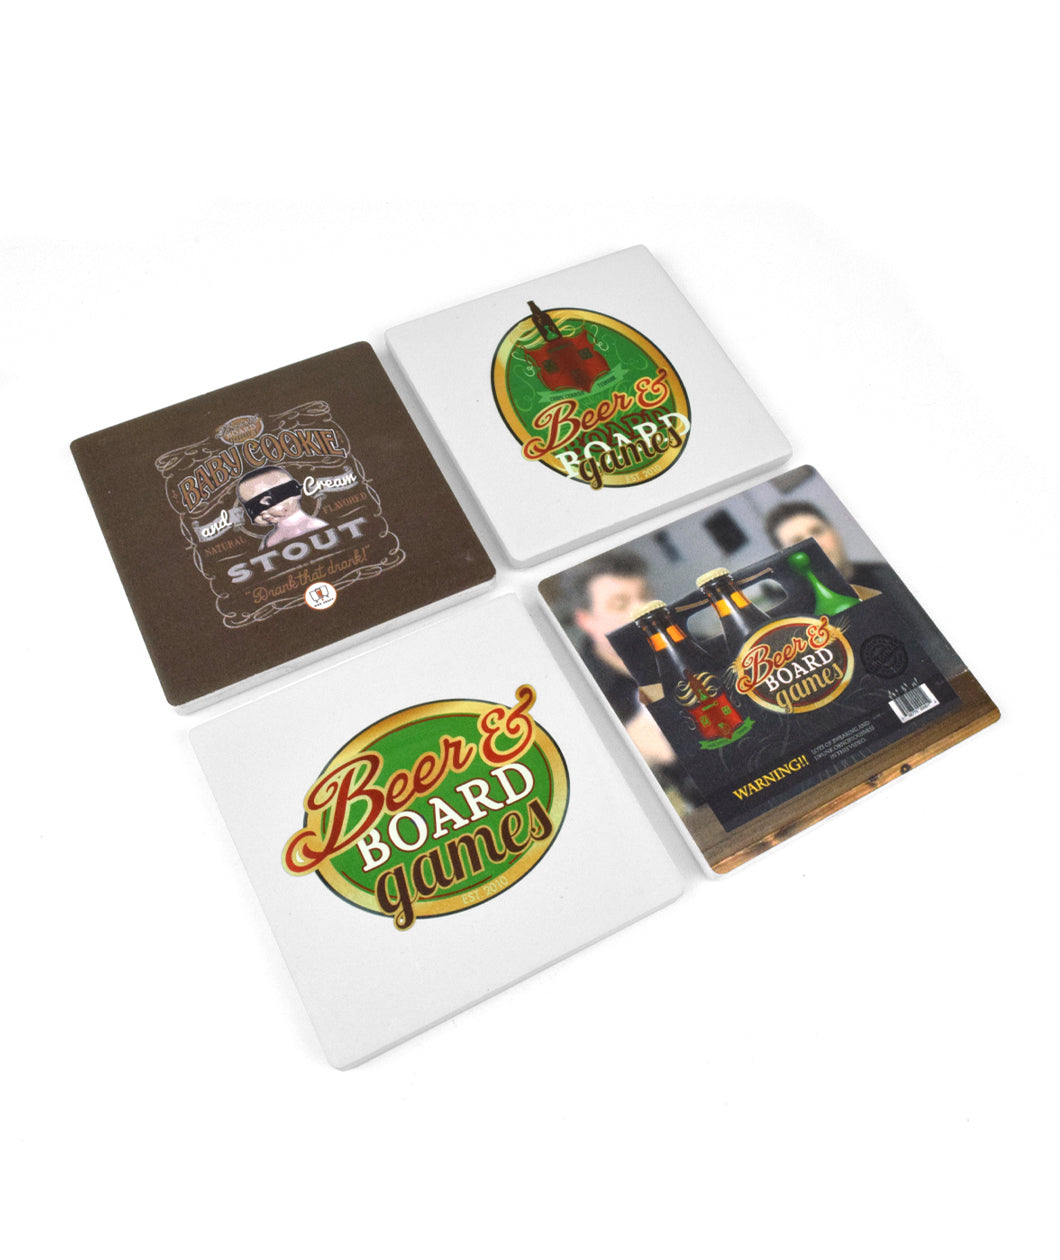 Beer & Board Games Ceramic Coasters